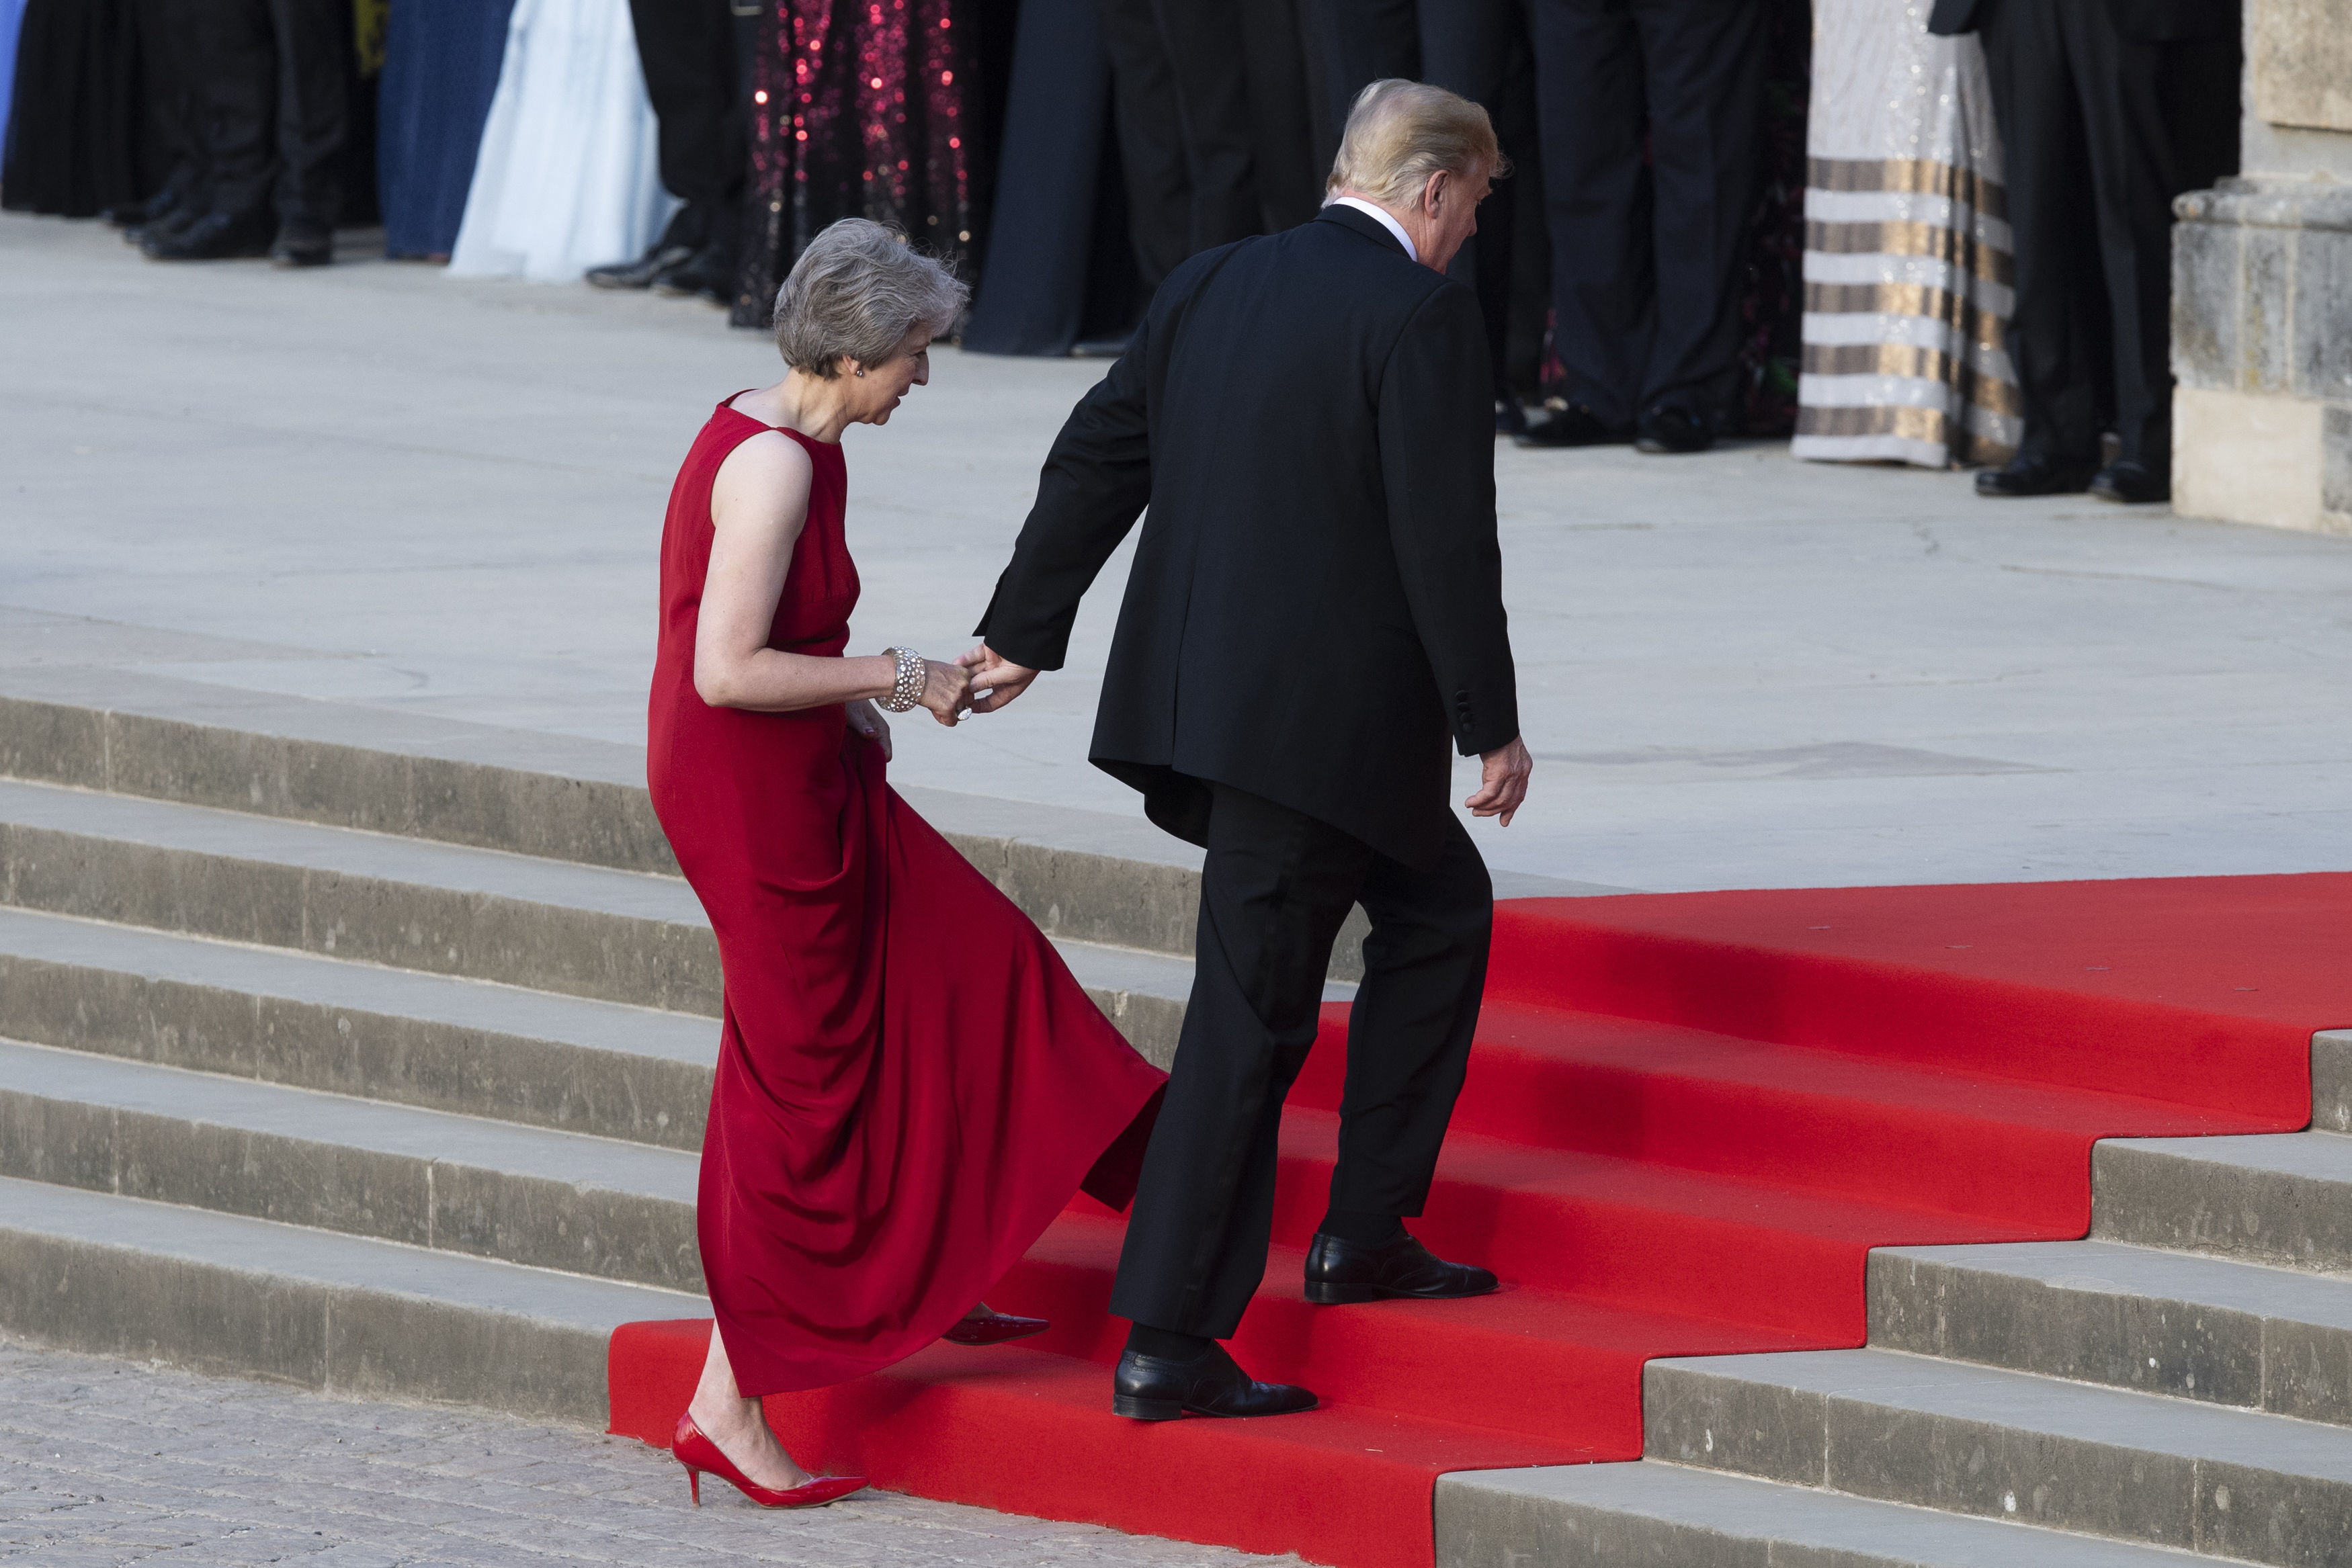 Donald Trump's kind-of, sort-of apology to Theresa May